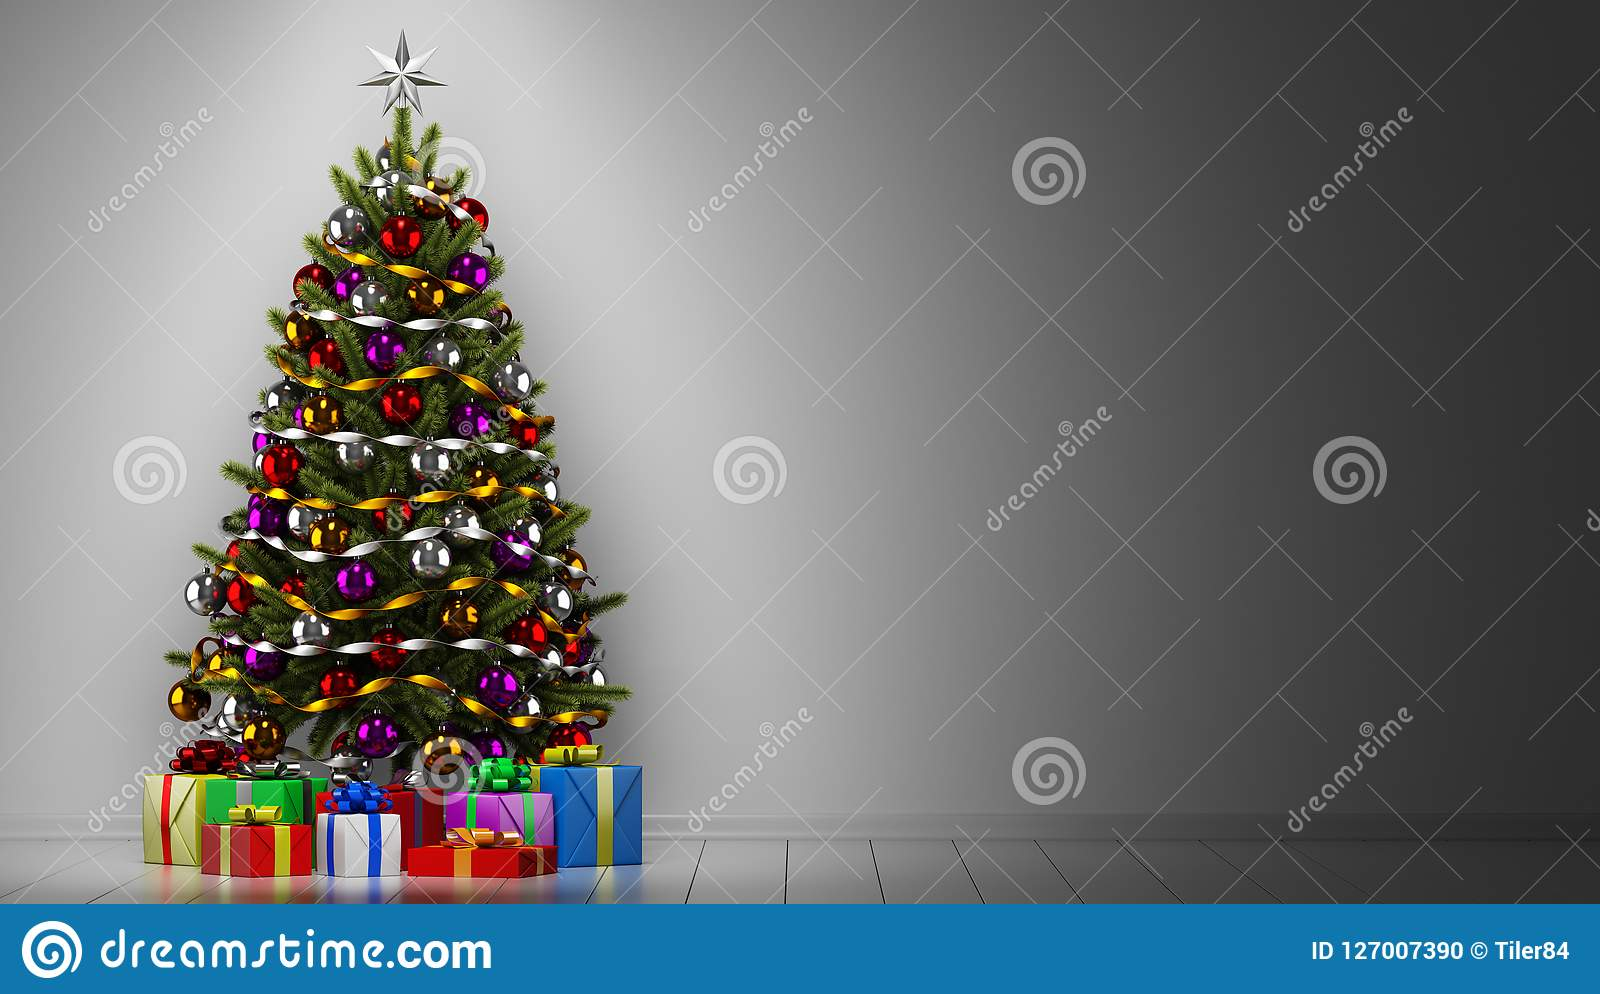 Christmas tree with gift boxes in dark room